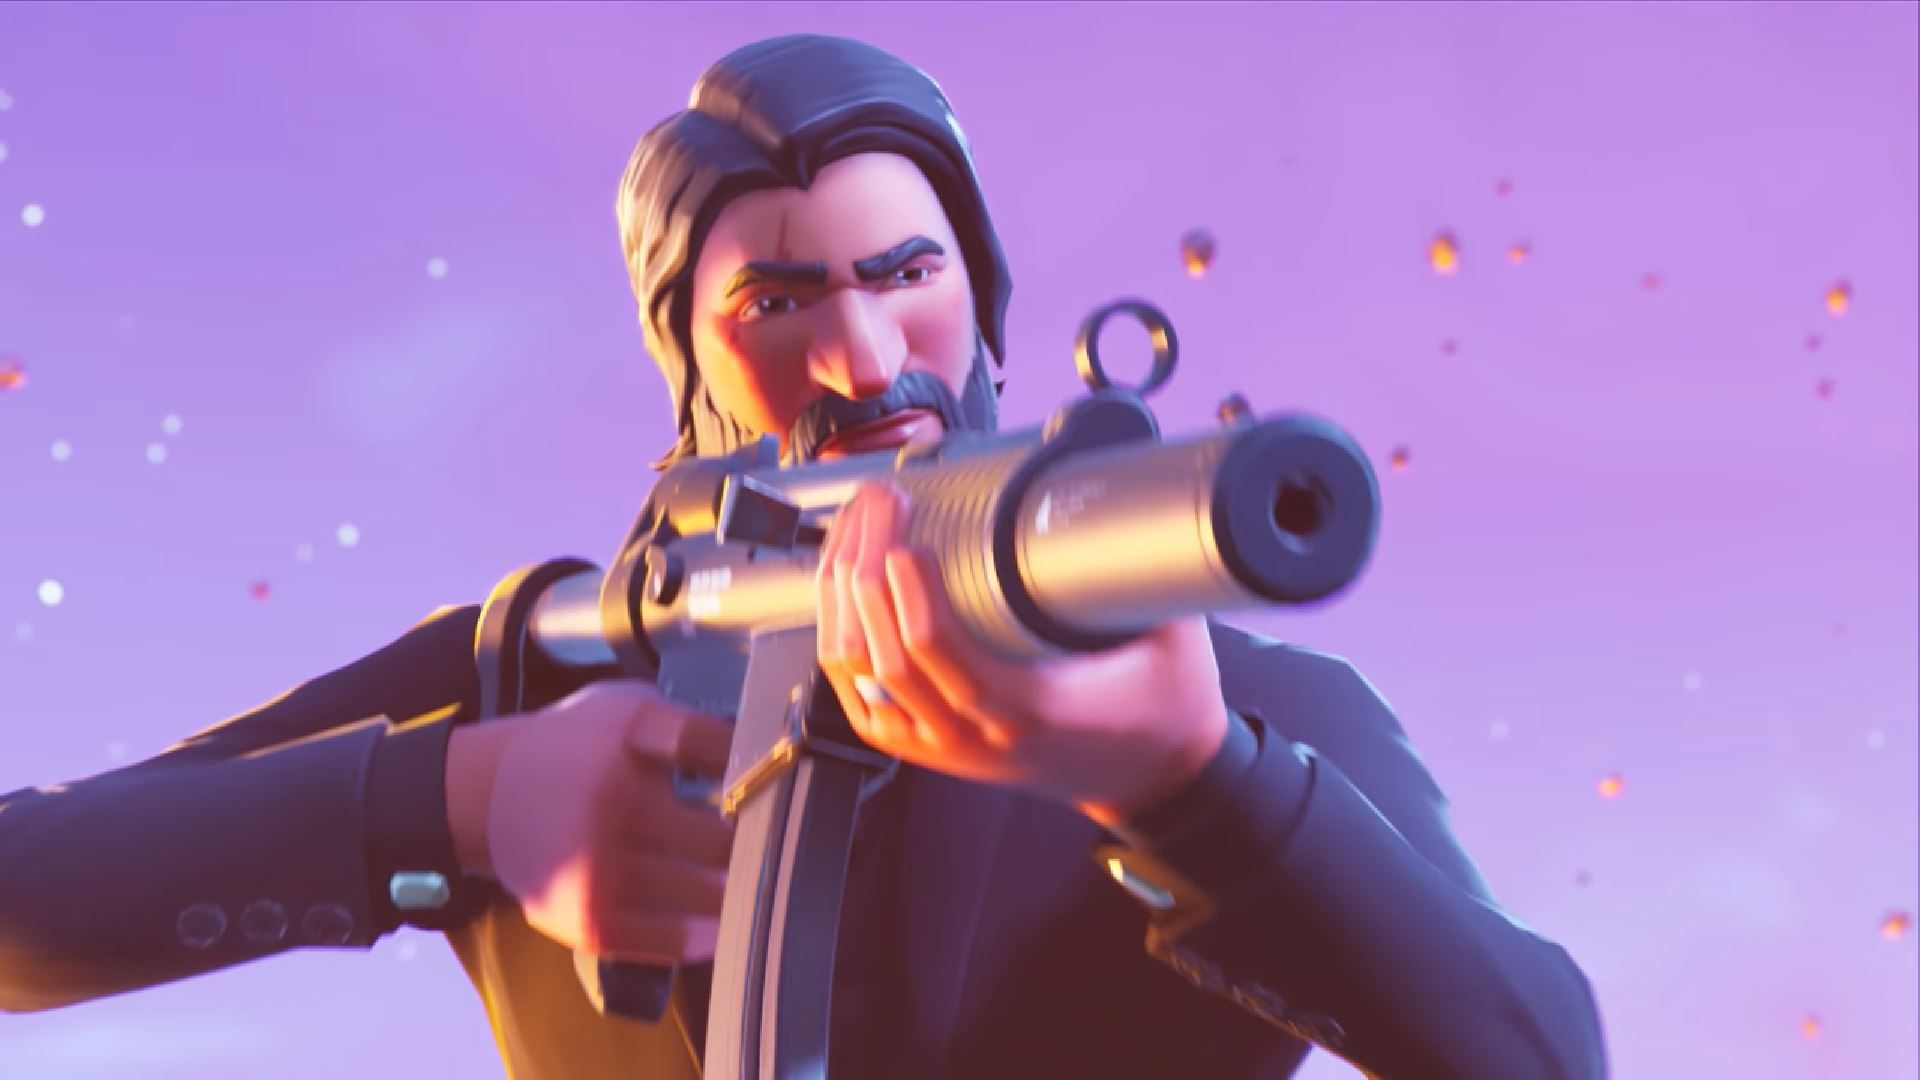 1920x1080 Fortnite's best weapons: Battle Royale guide | PC Gamer